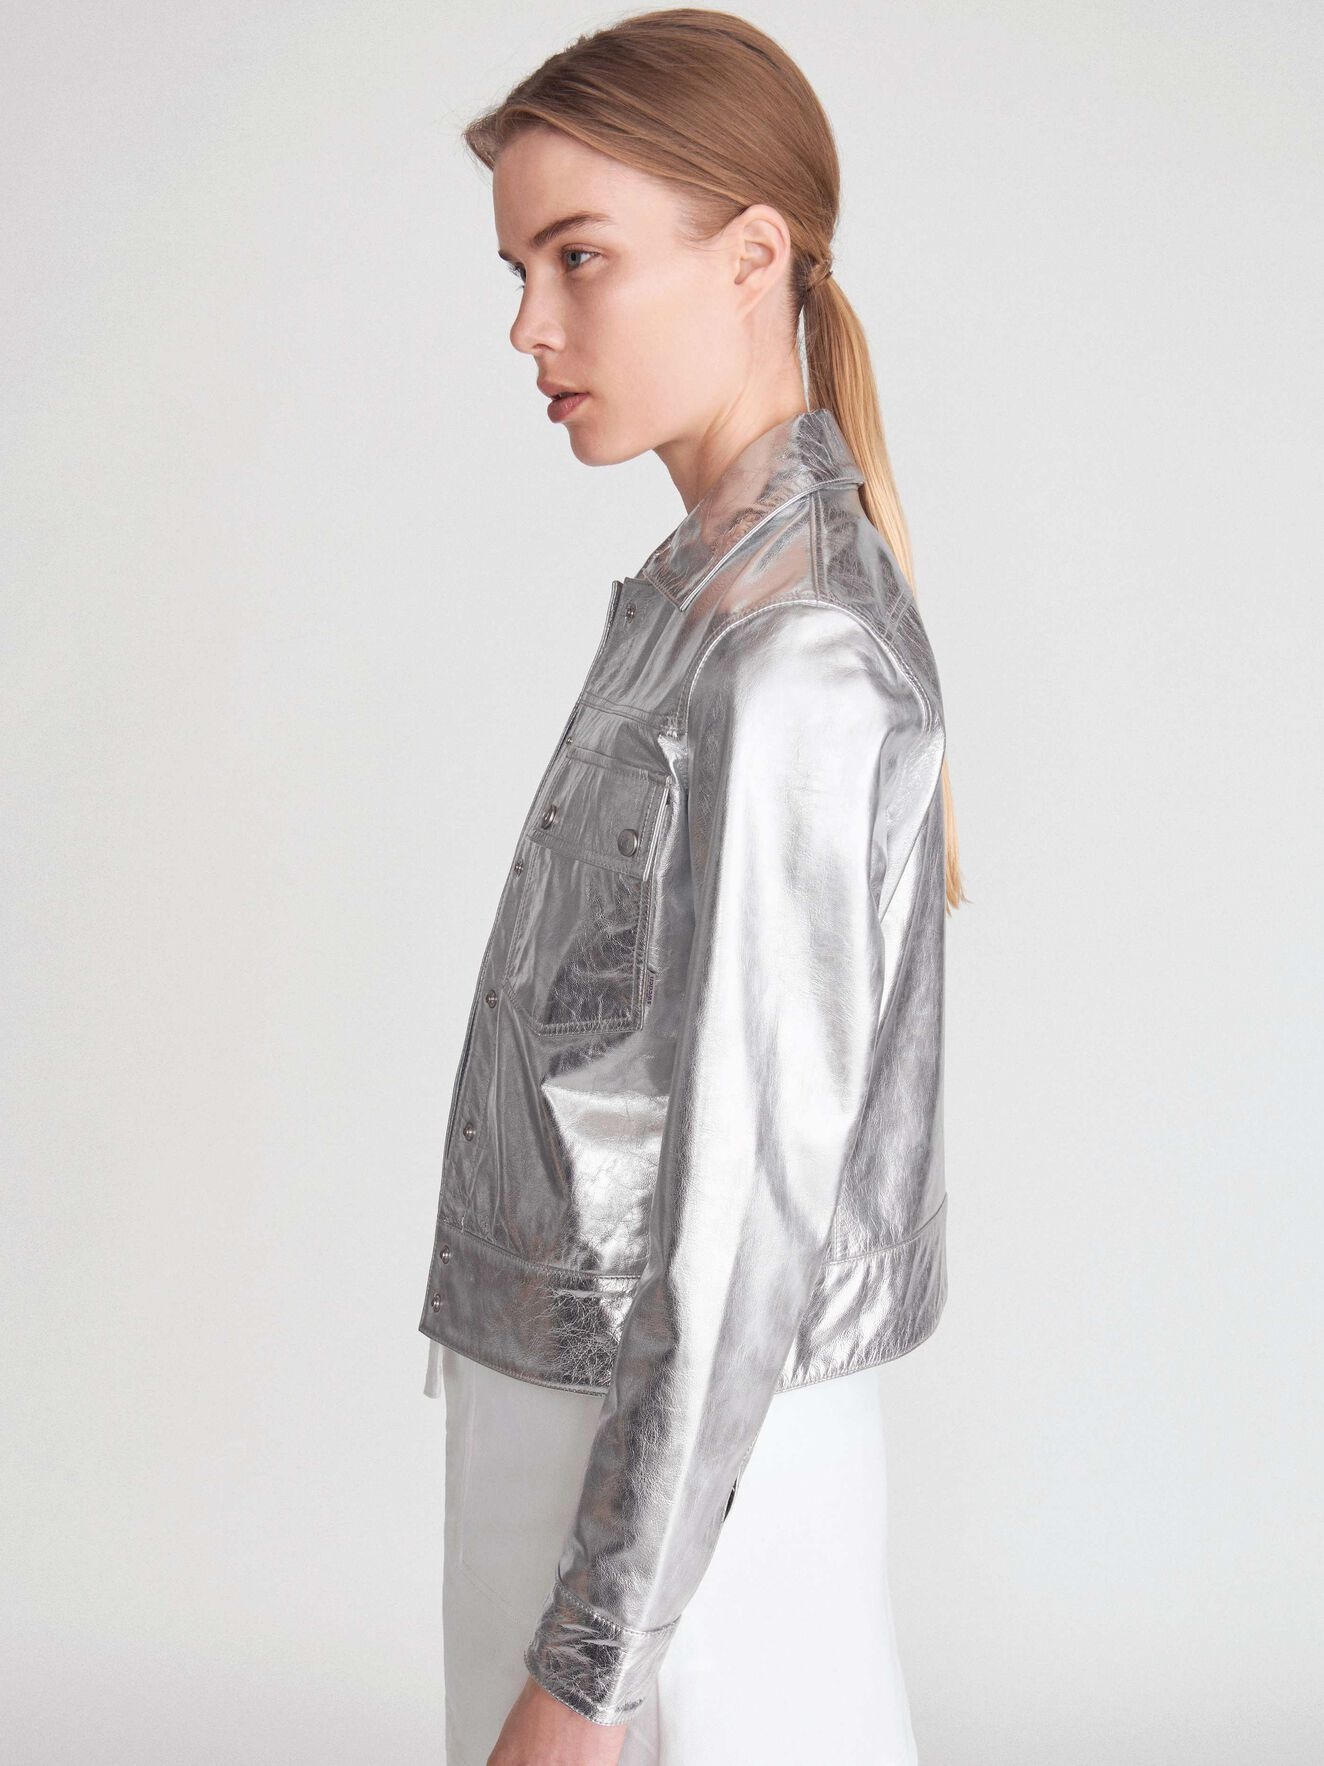 Sonic M Jacket in Mercury Grey from Tiger of Sweden